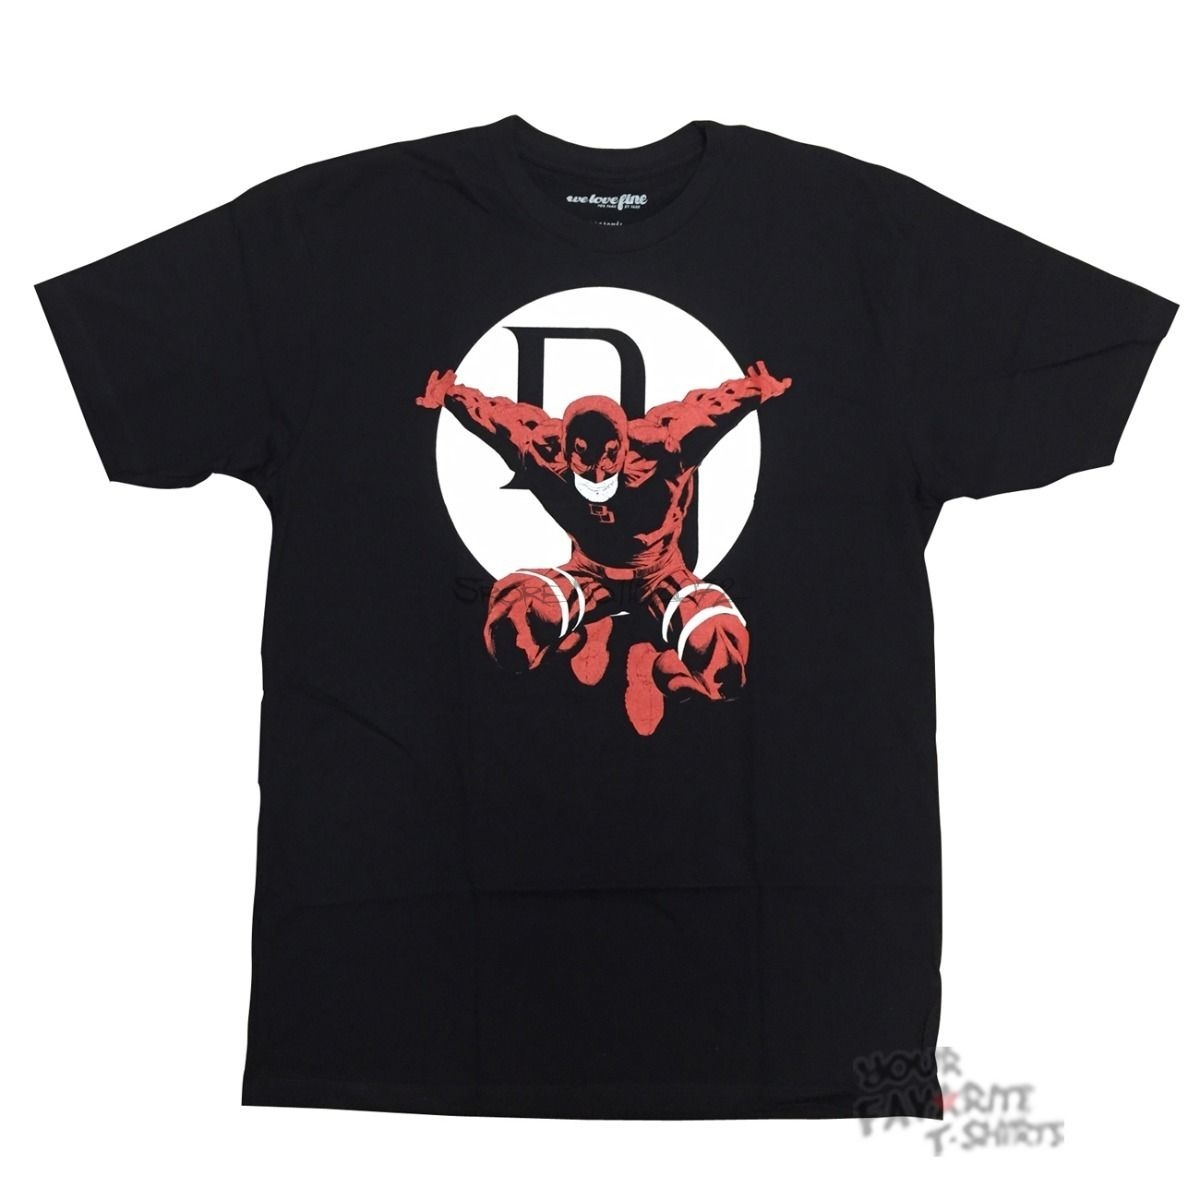 Daredevil Fear Nothing Marvel Comics Licensed Adult Shirt S-3XL